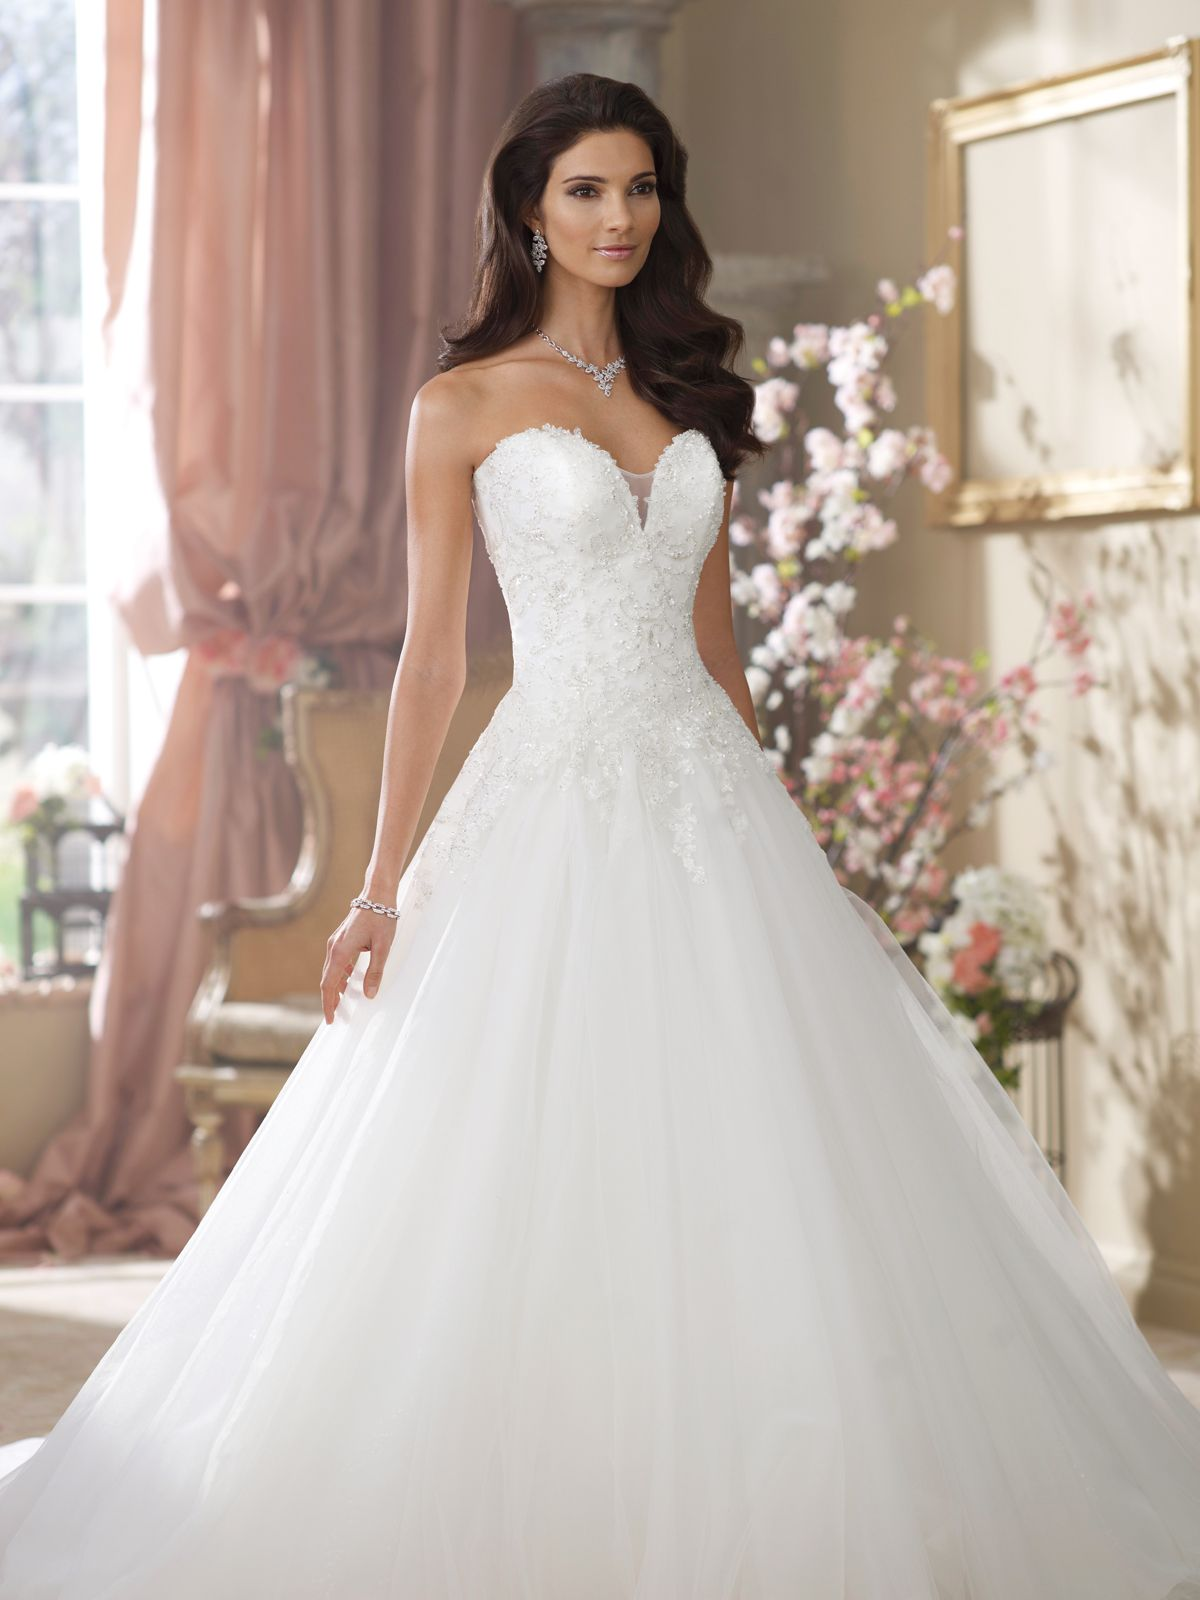 Wedding dresses 2014 collection strapless hand beaded for Hand beaded wedding dresses